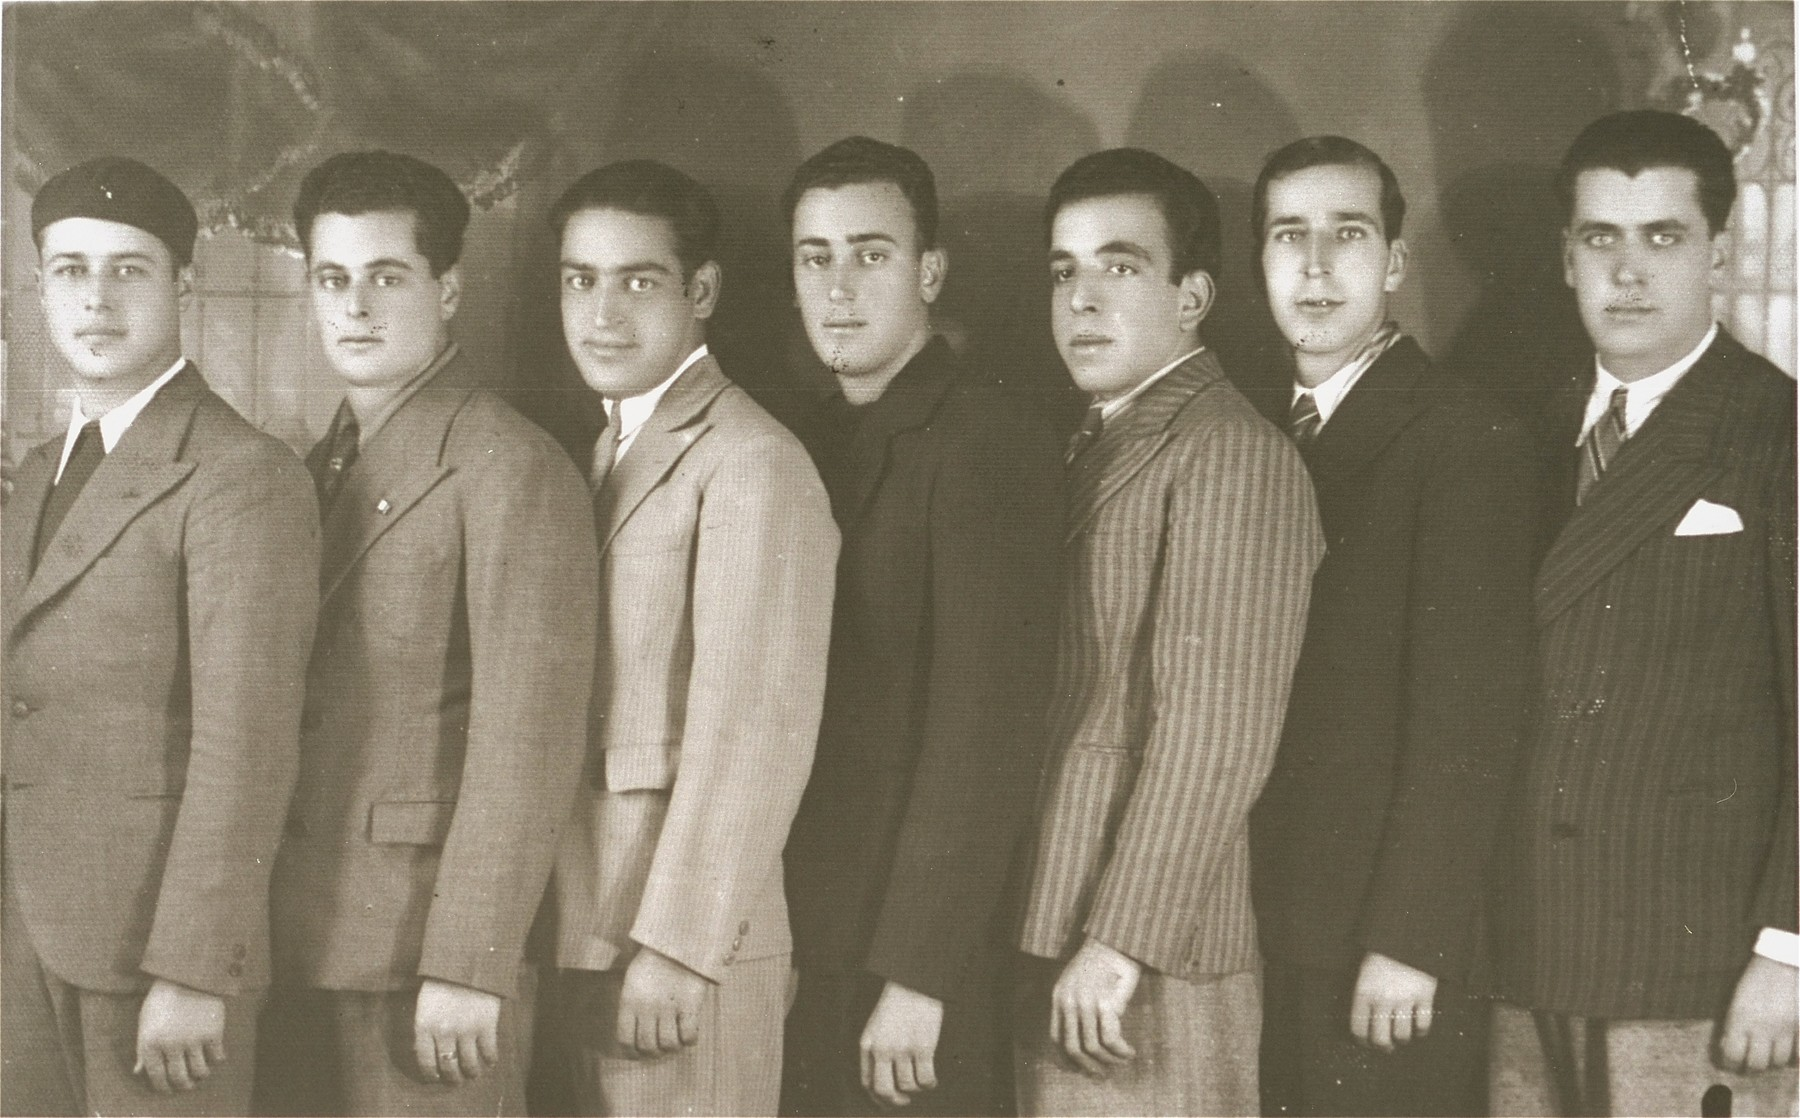 Group portrait of members of the Maccabi sports club of Rhodes.  Among those pictured is Yosef Alcana (third from the left), the president of the club.  In 1944 all seven young men were deported to Auschwitz and killed.